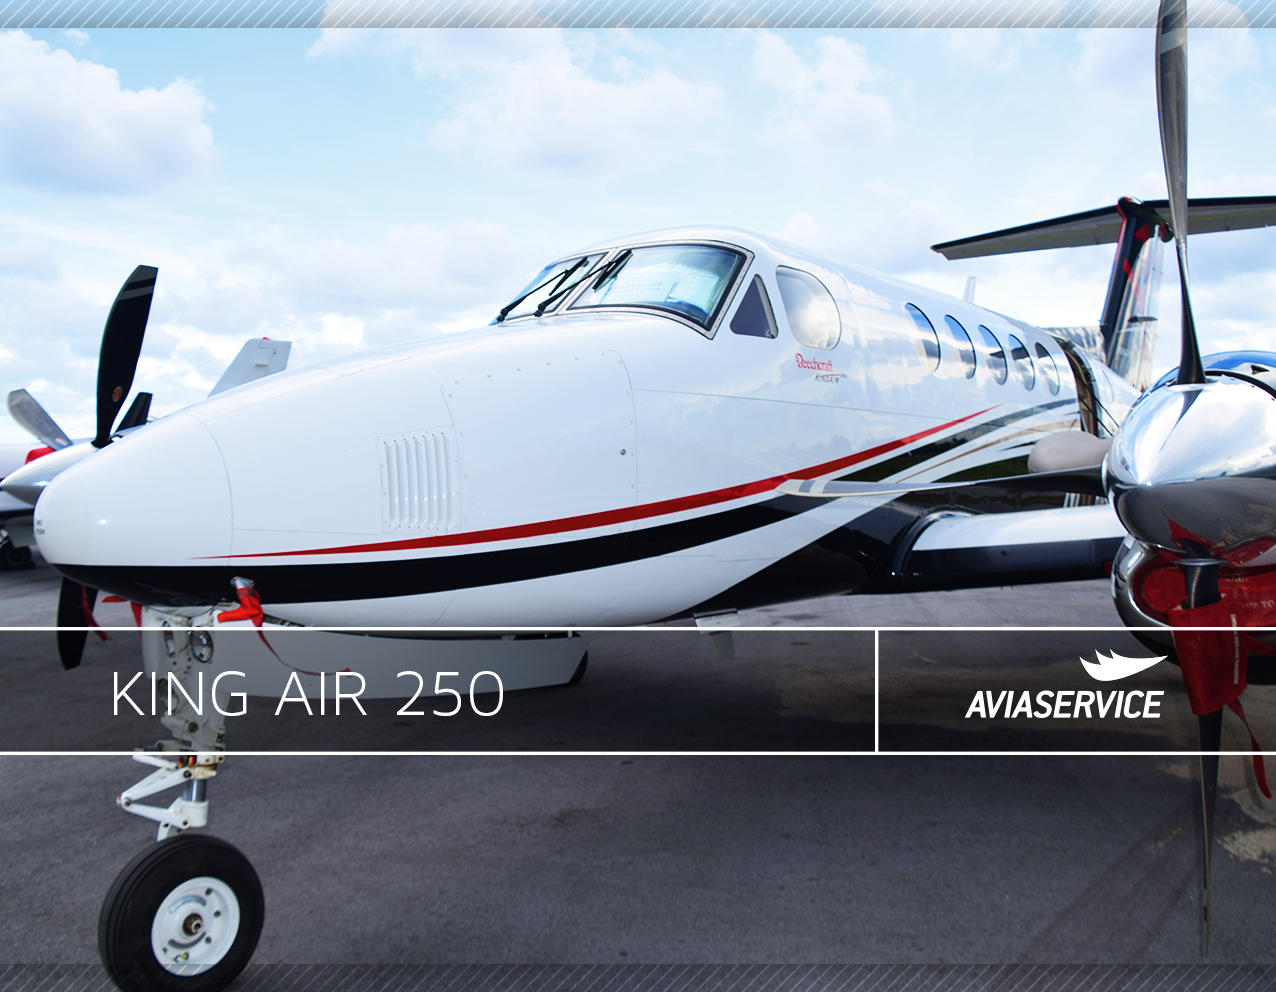 Aircraft Listing - King Air 250 listed for sale